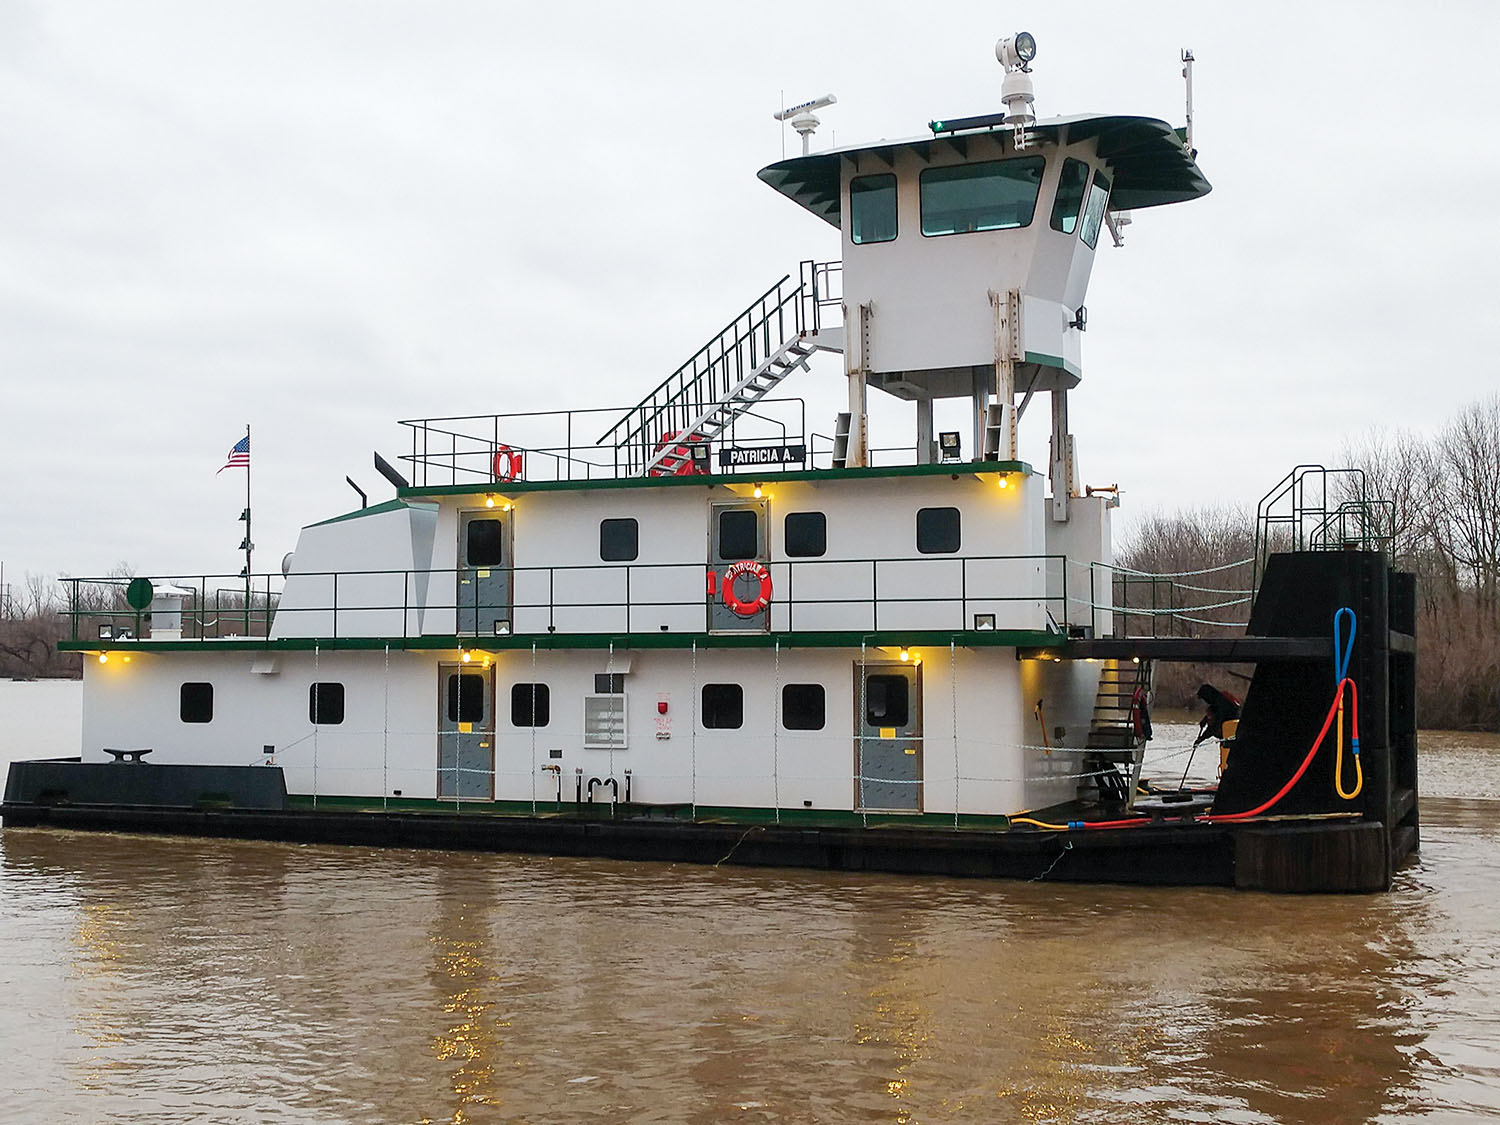 The Patricia A was built by Barbour JB Shipyard for Southern Illinois Transfer.